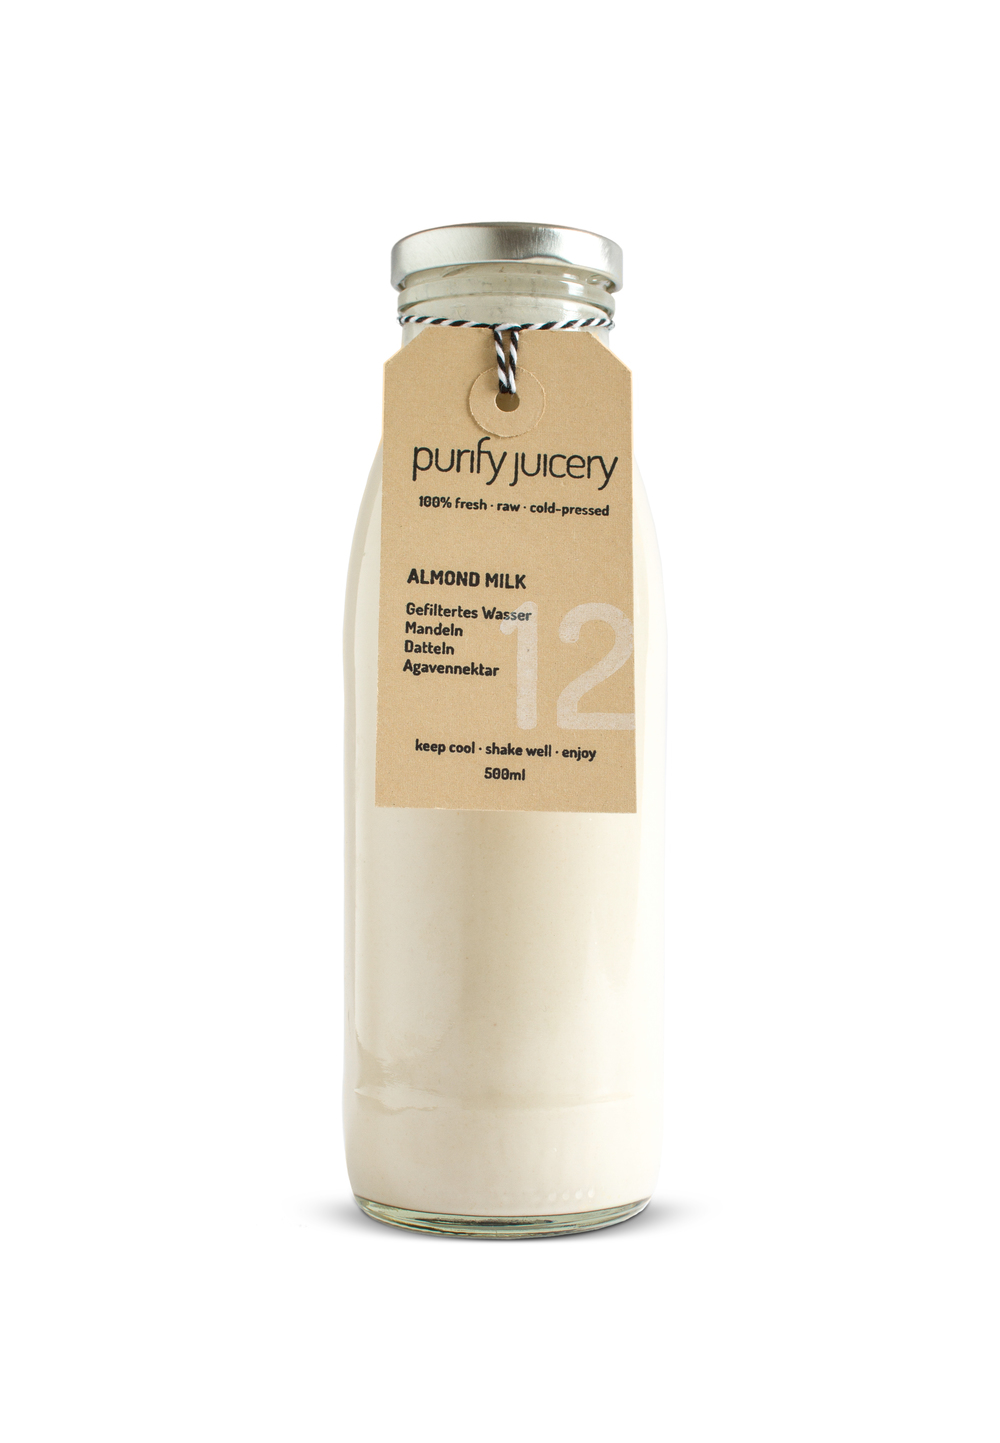 Purify_Juicery_bottles_12.jpg